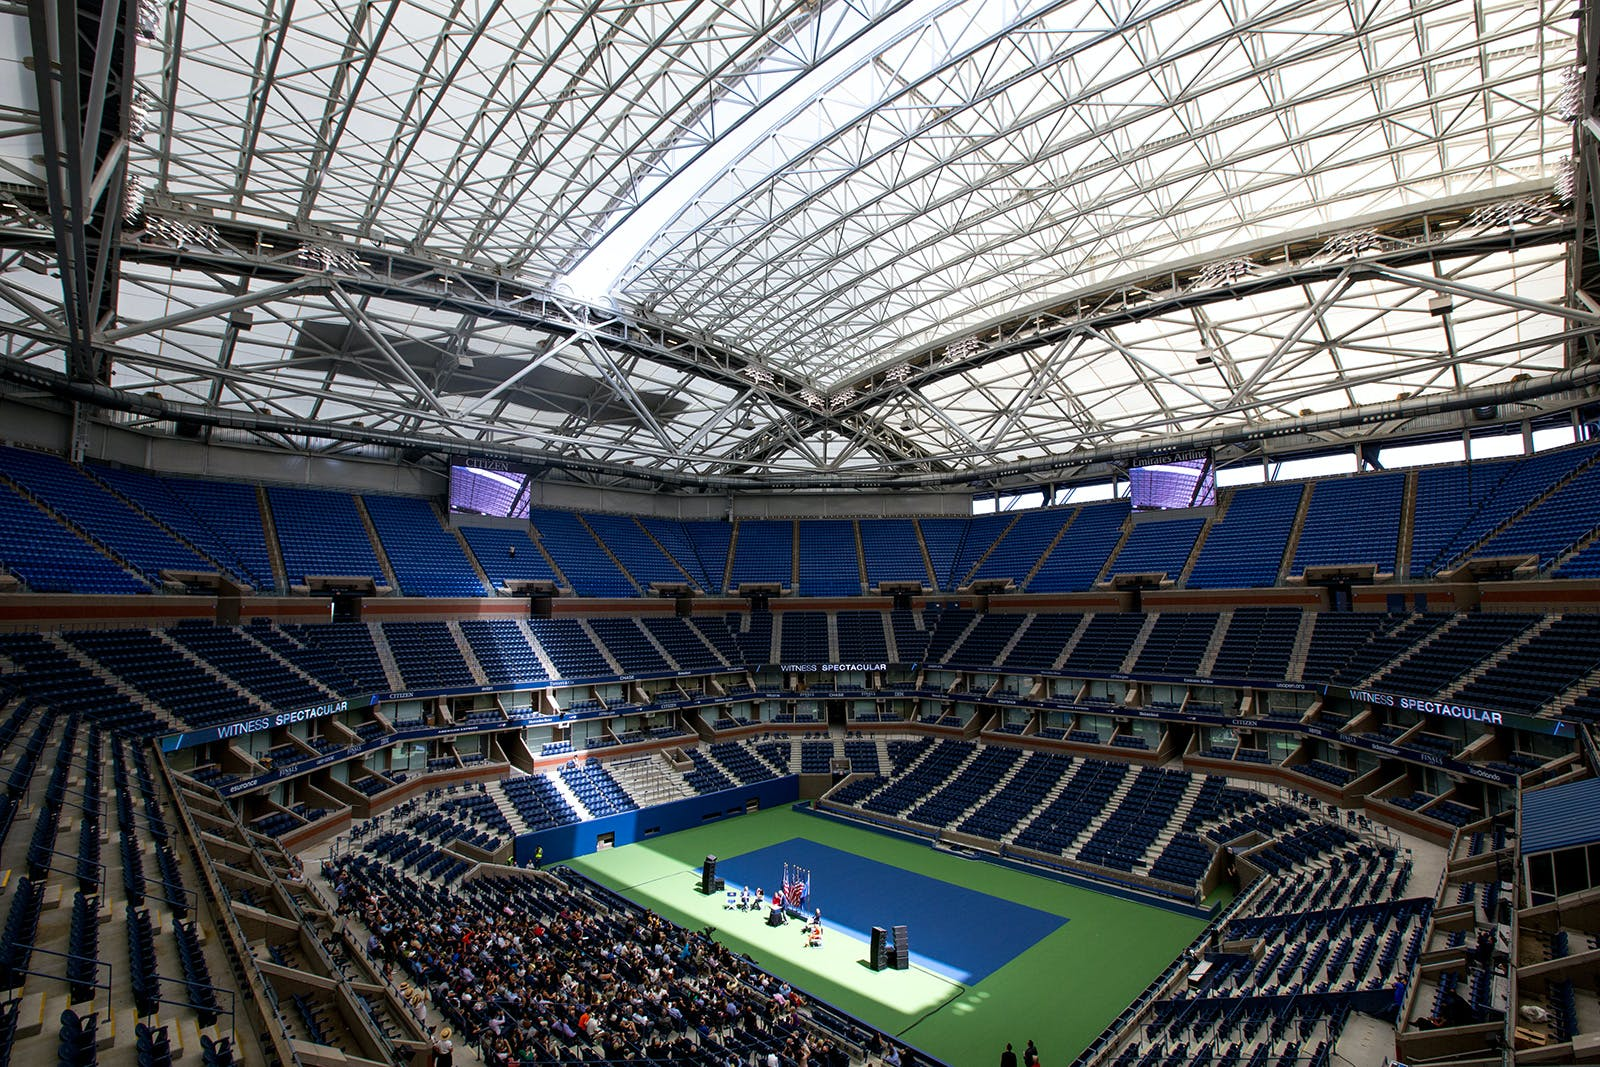 New $150M PTFE membrane roof at Arthur Ashe Stadium blocks the